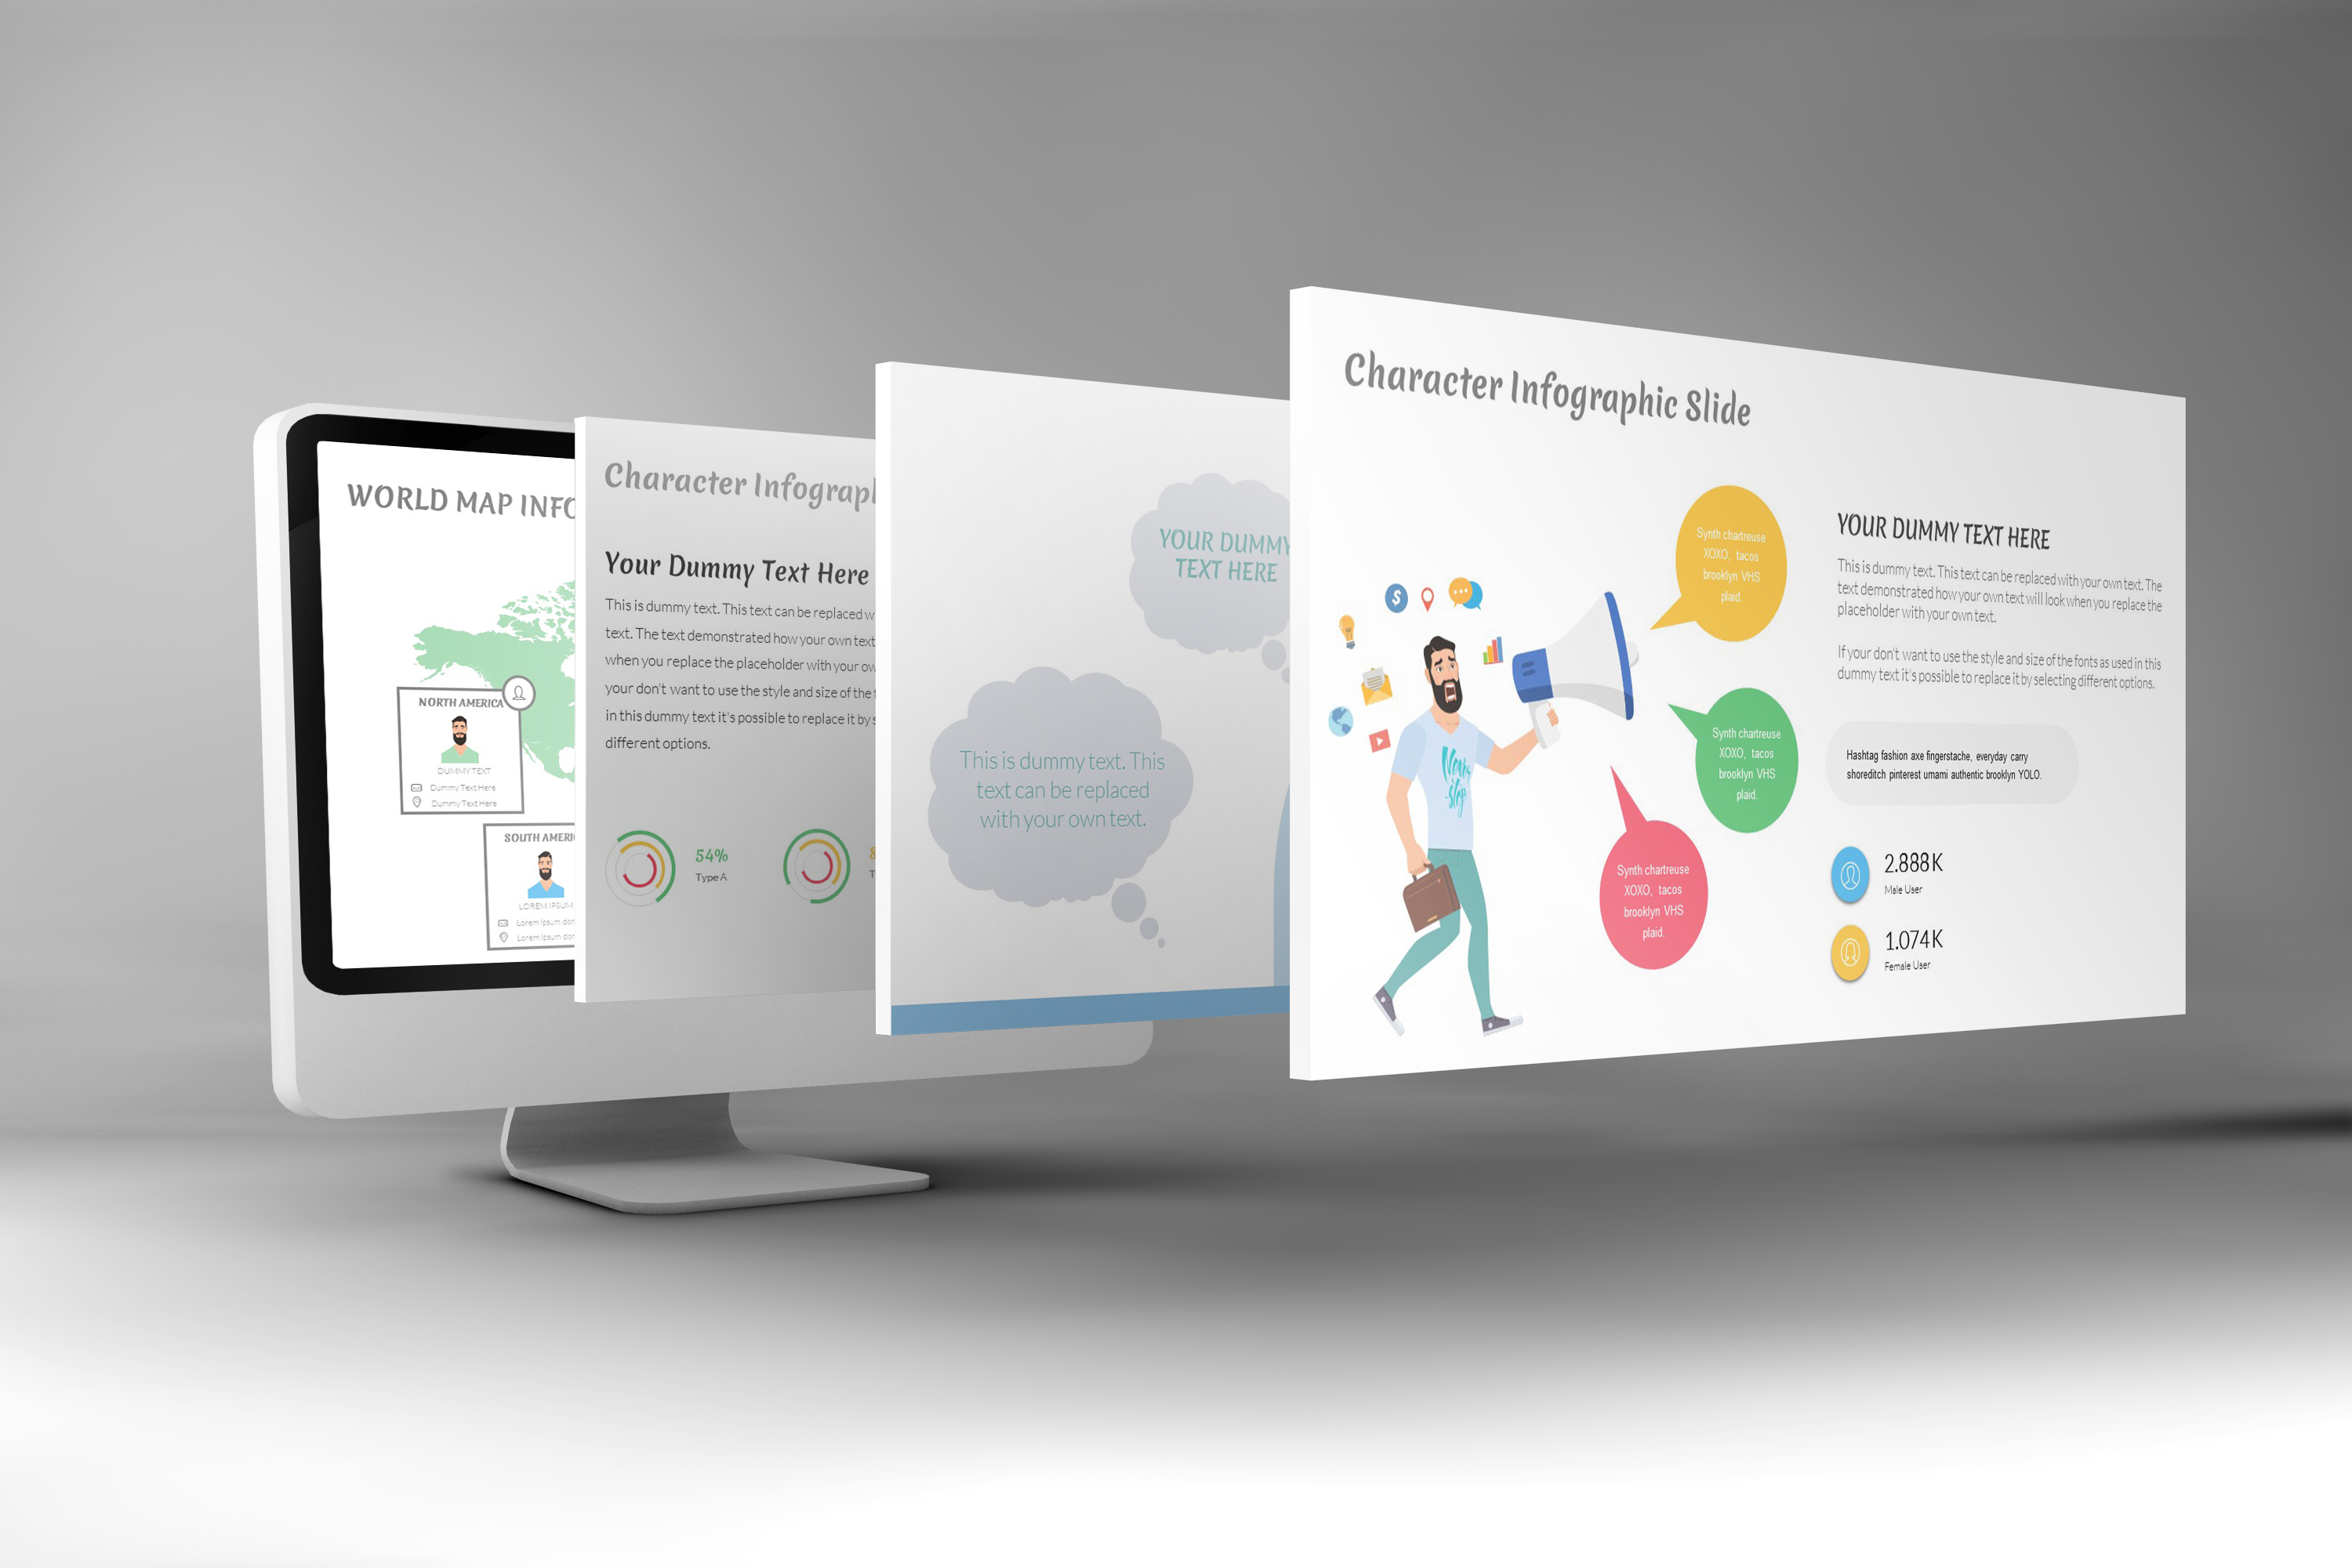 E-Trainer PowerPoint Template 1 example image 5